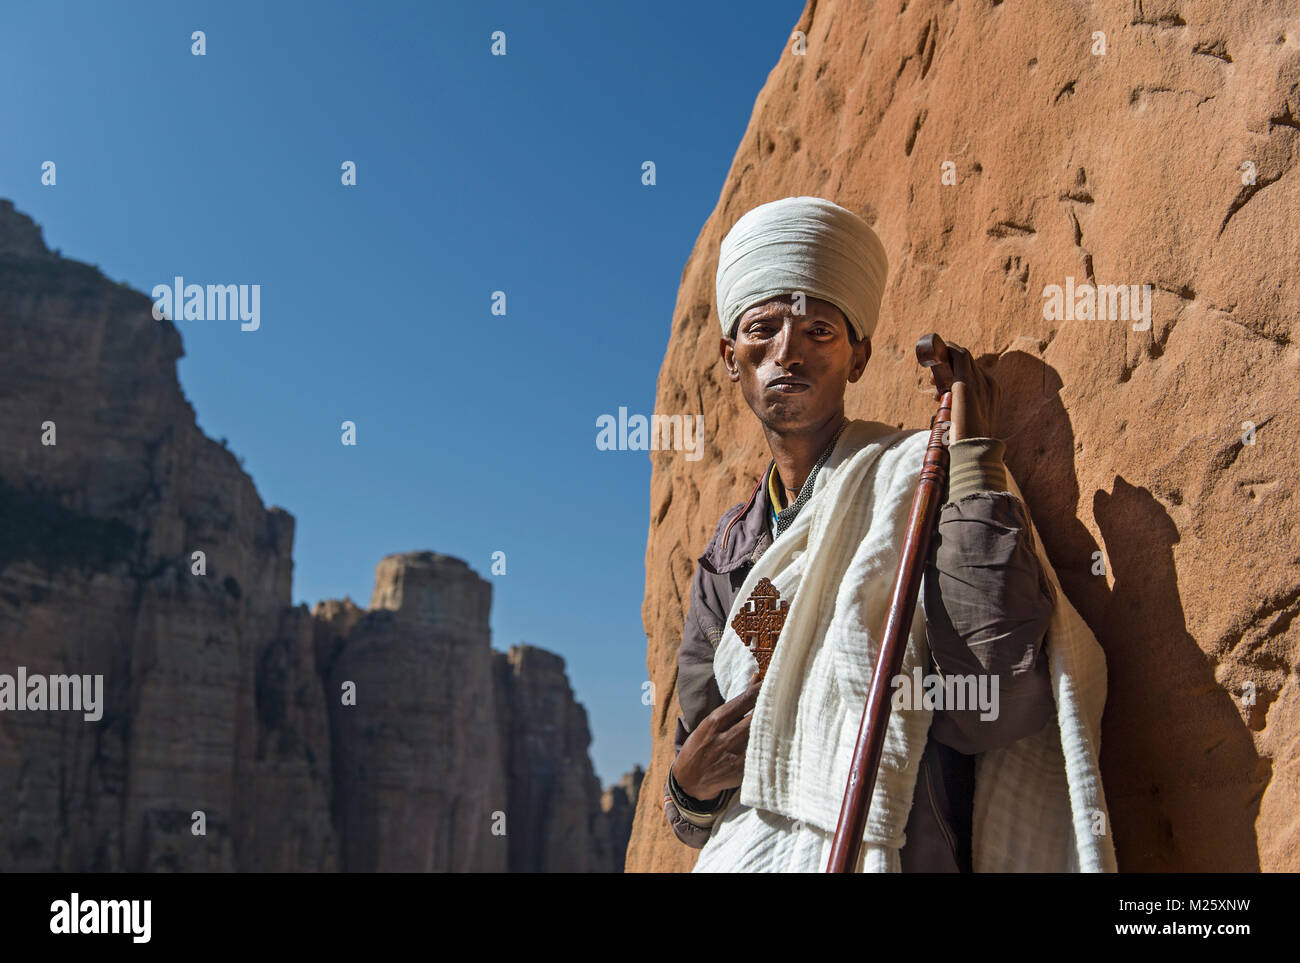 Coptic priest standing at the entry to the rock-hewn church Abuna Yemata situated high up at a steep rock pinnacle, - Stock Image